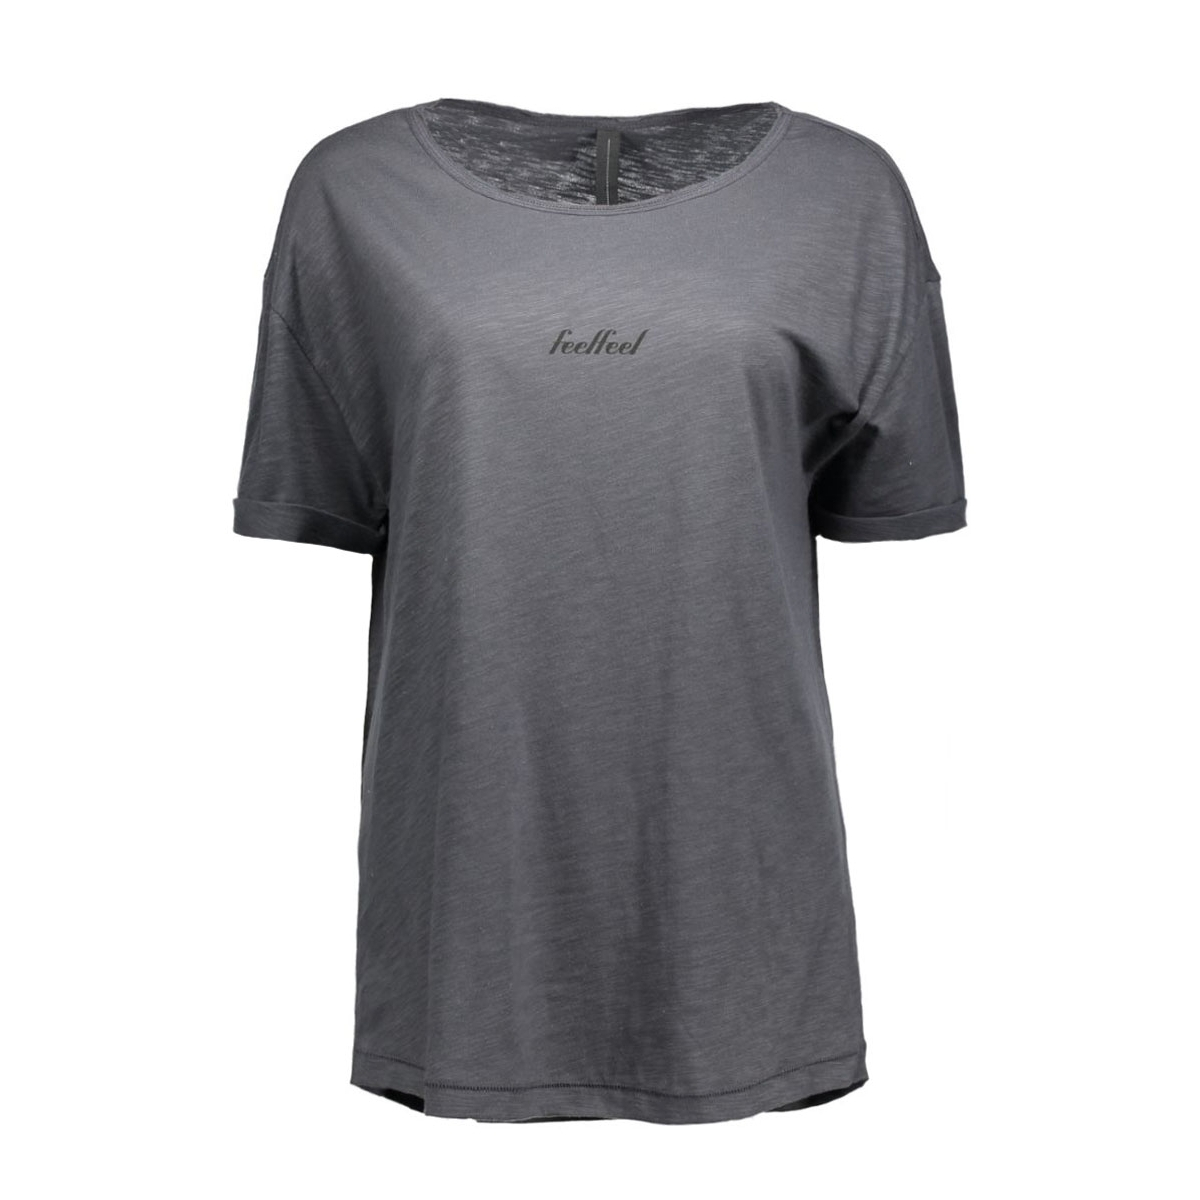 16wi750 10 days t-shirt charcoal